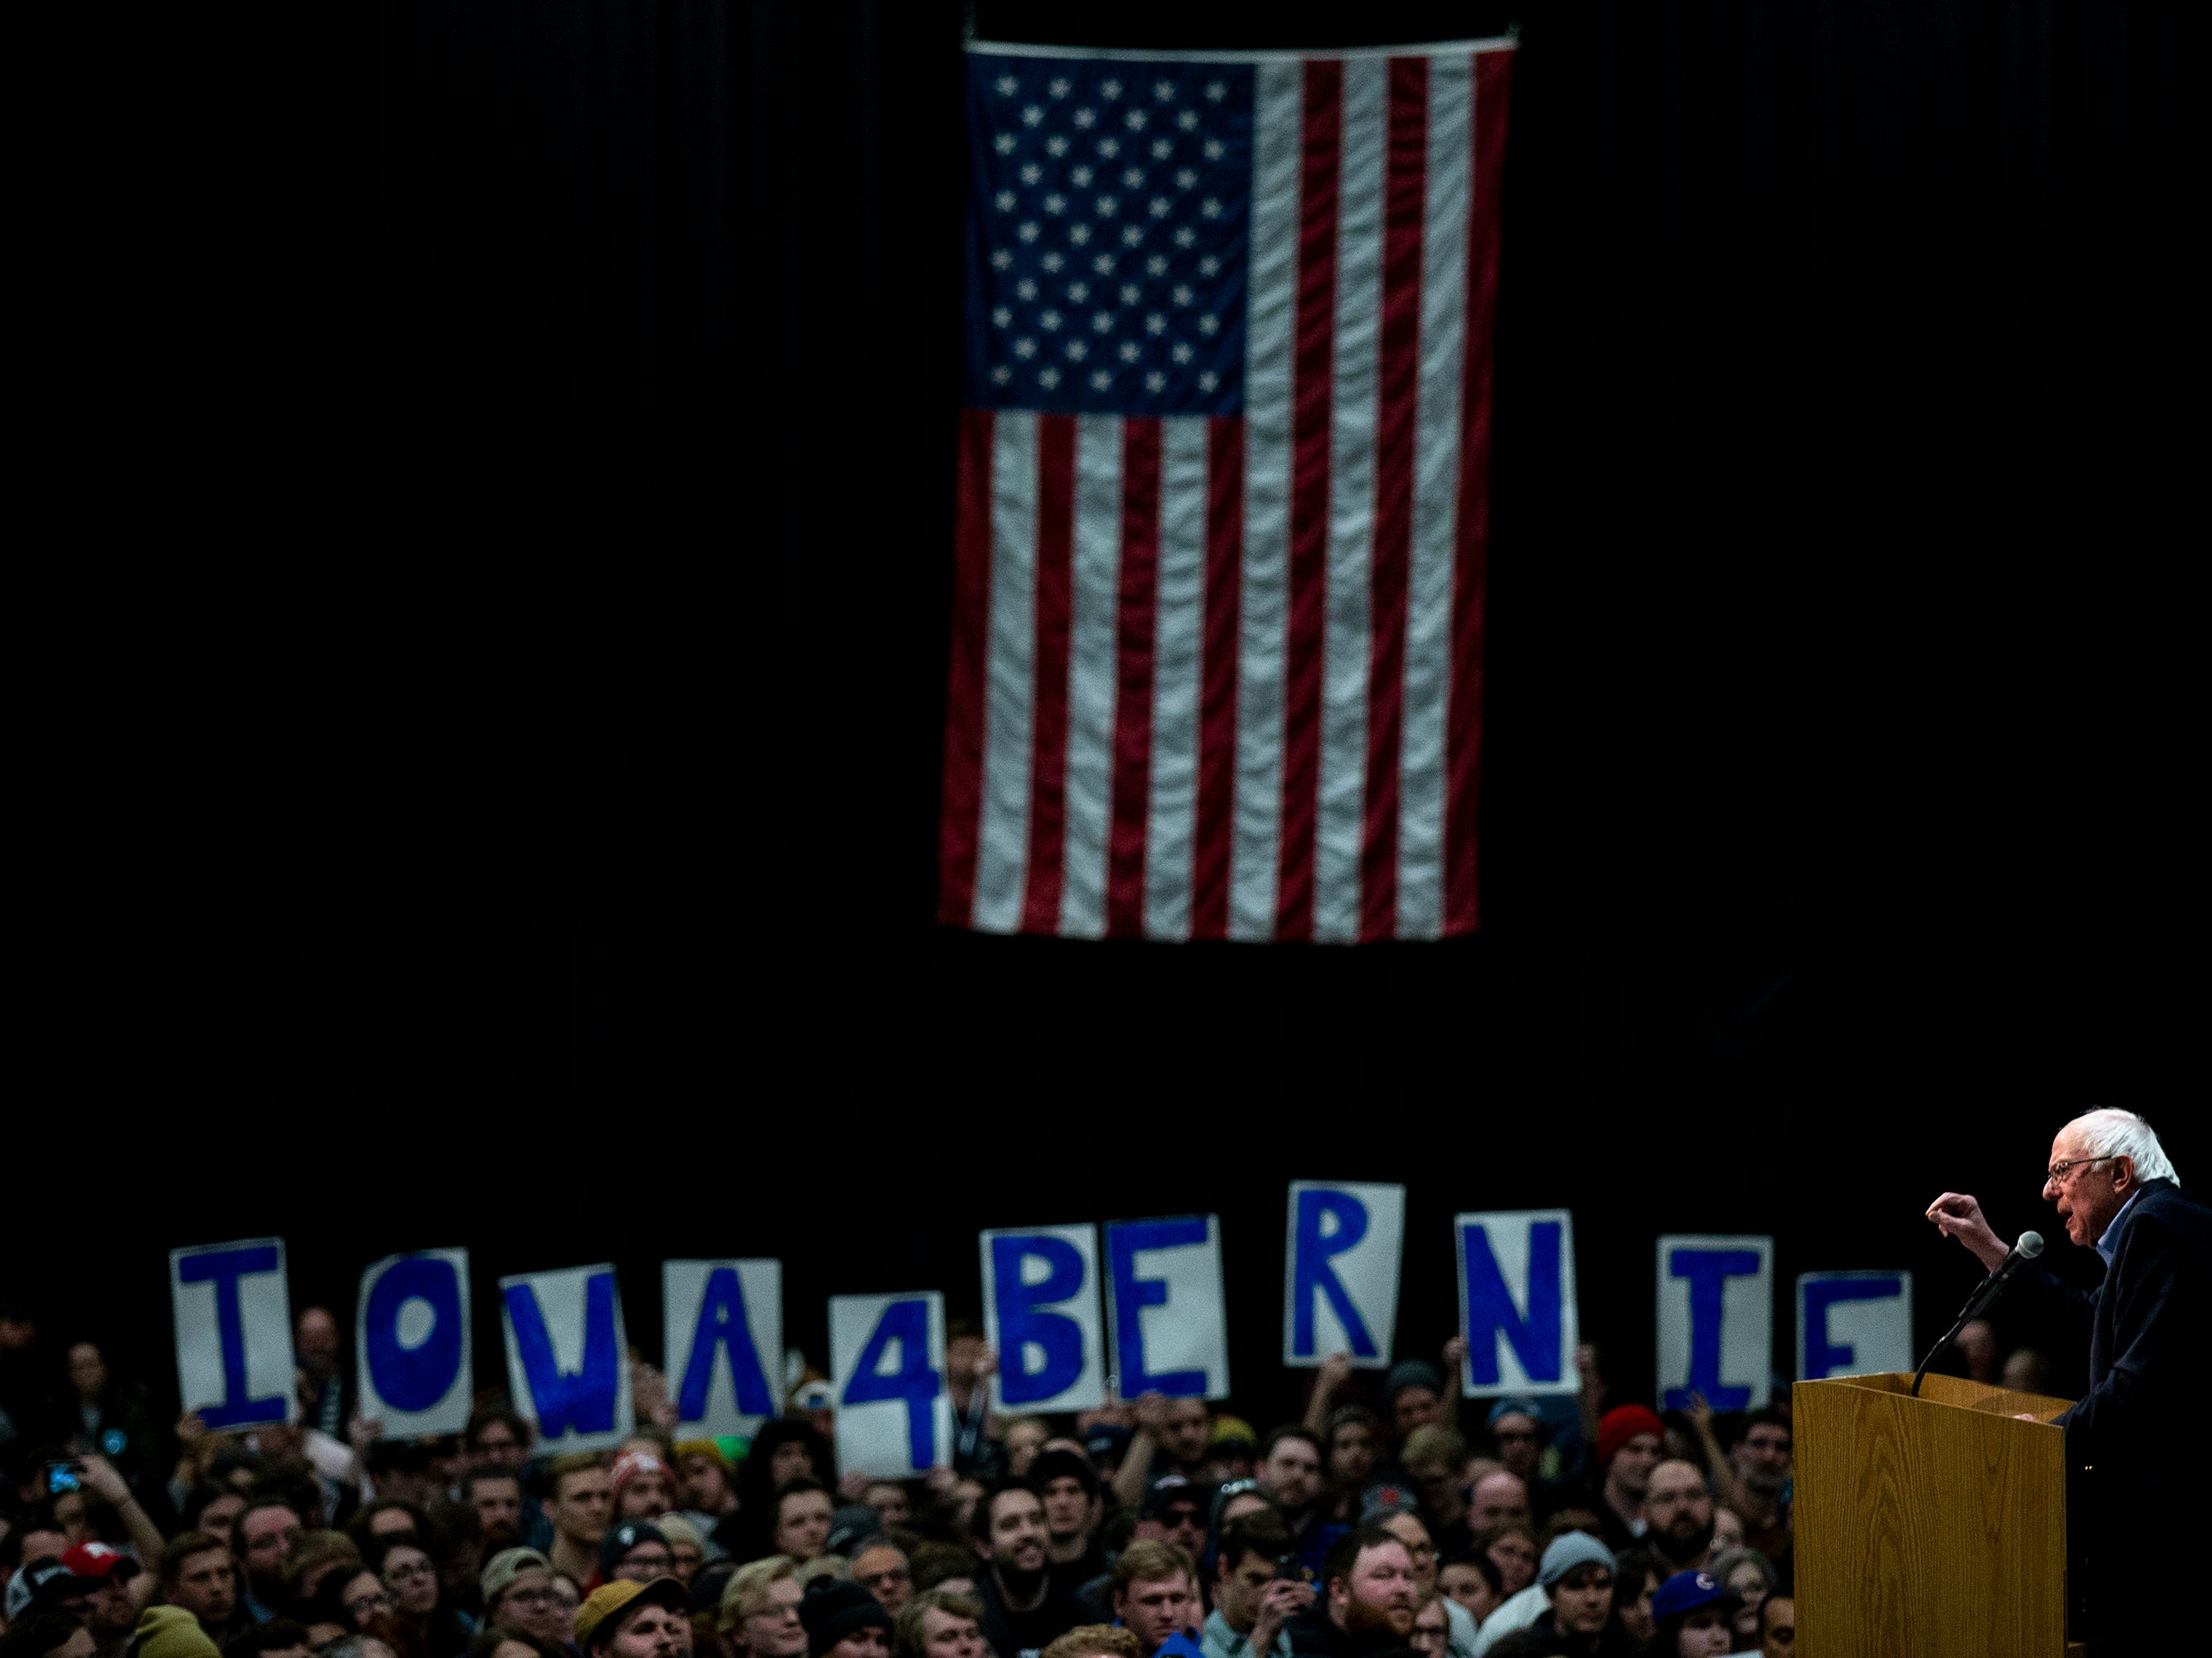 Sen. Bernie Sanders, I-VT, speaks to a crowd of people gathered in the Mid-America Center on his first trip to Iowa after announcing he'll run for president for the second time on Thursday, March 7, 2019, in Council Bluffs.